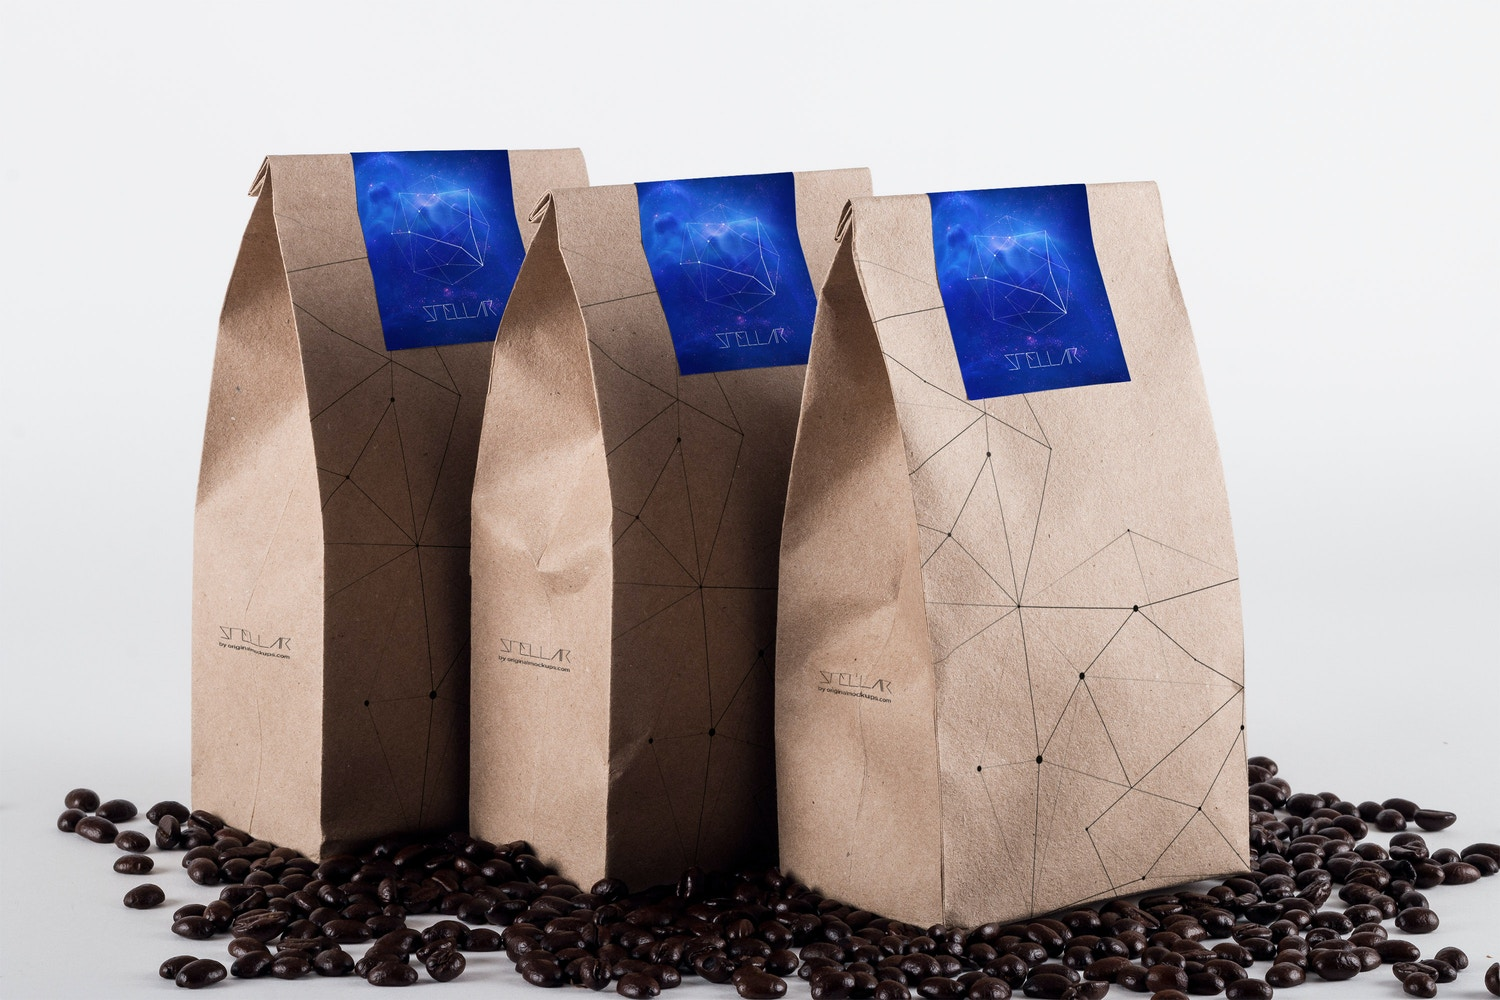 Coffee Bag Mockup 01 by Original Mockups on Original Mockups